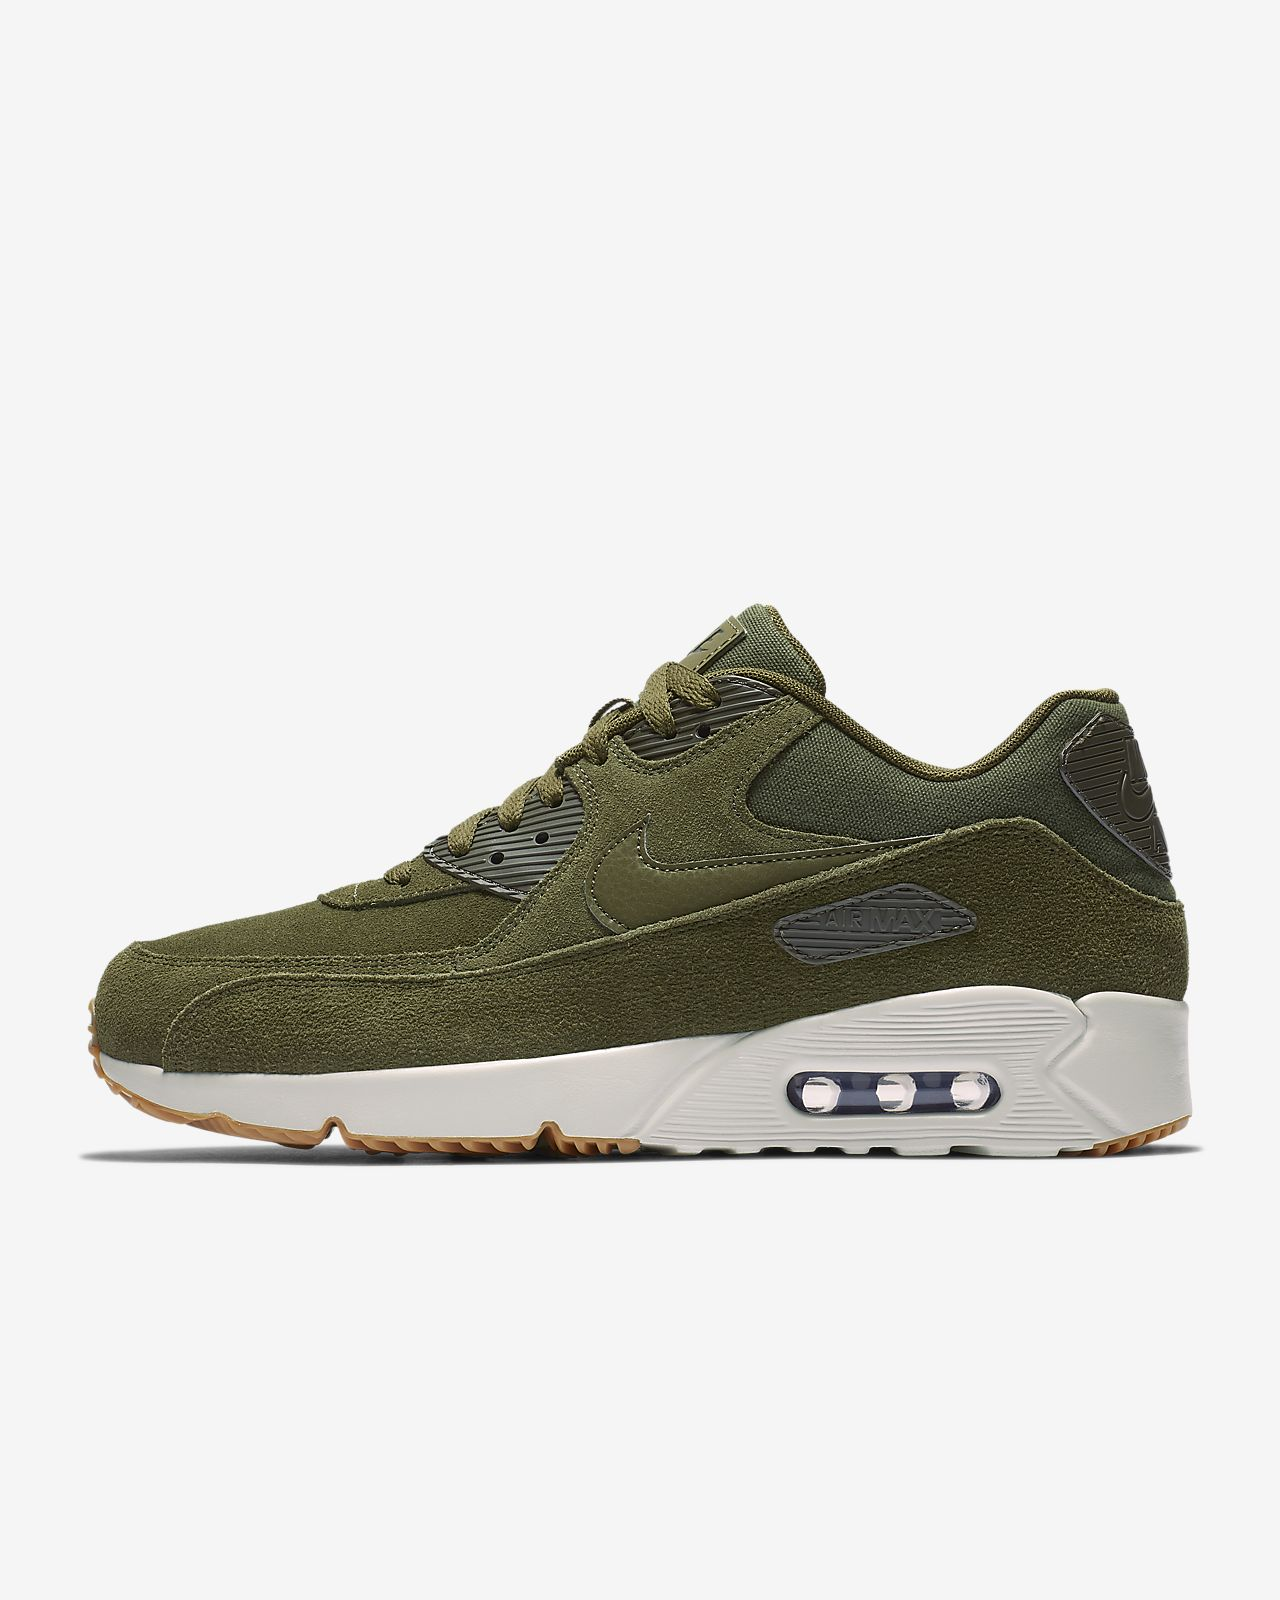 834fae4aa9d56 Nike Air Max 90 Ultra 2.0 Men s Shoe. Nike.com